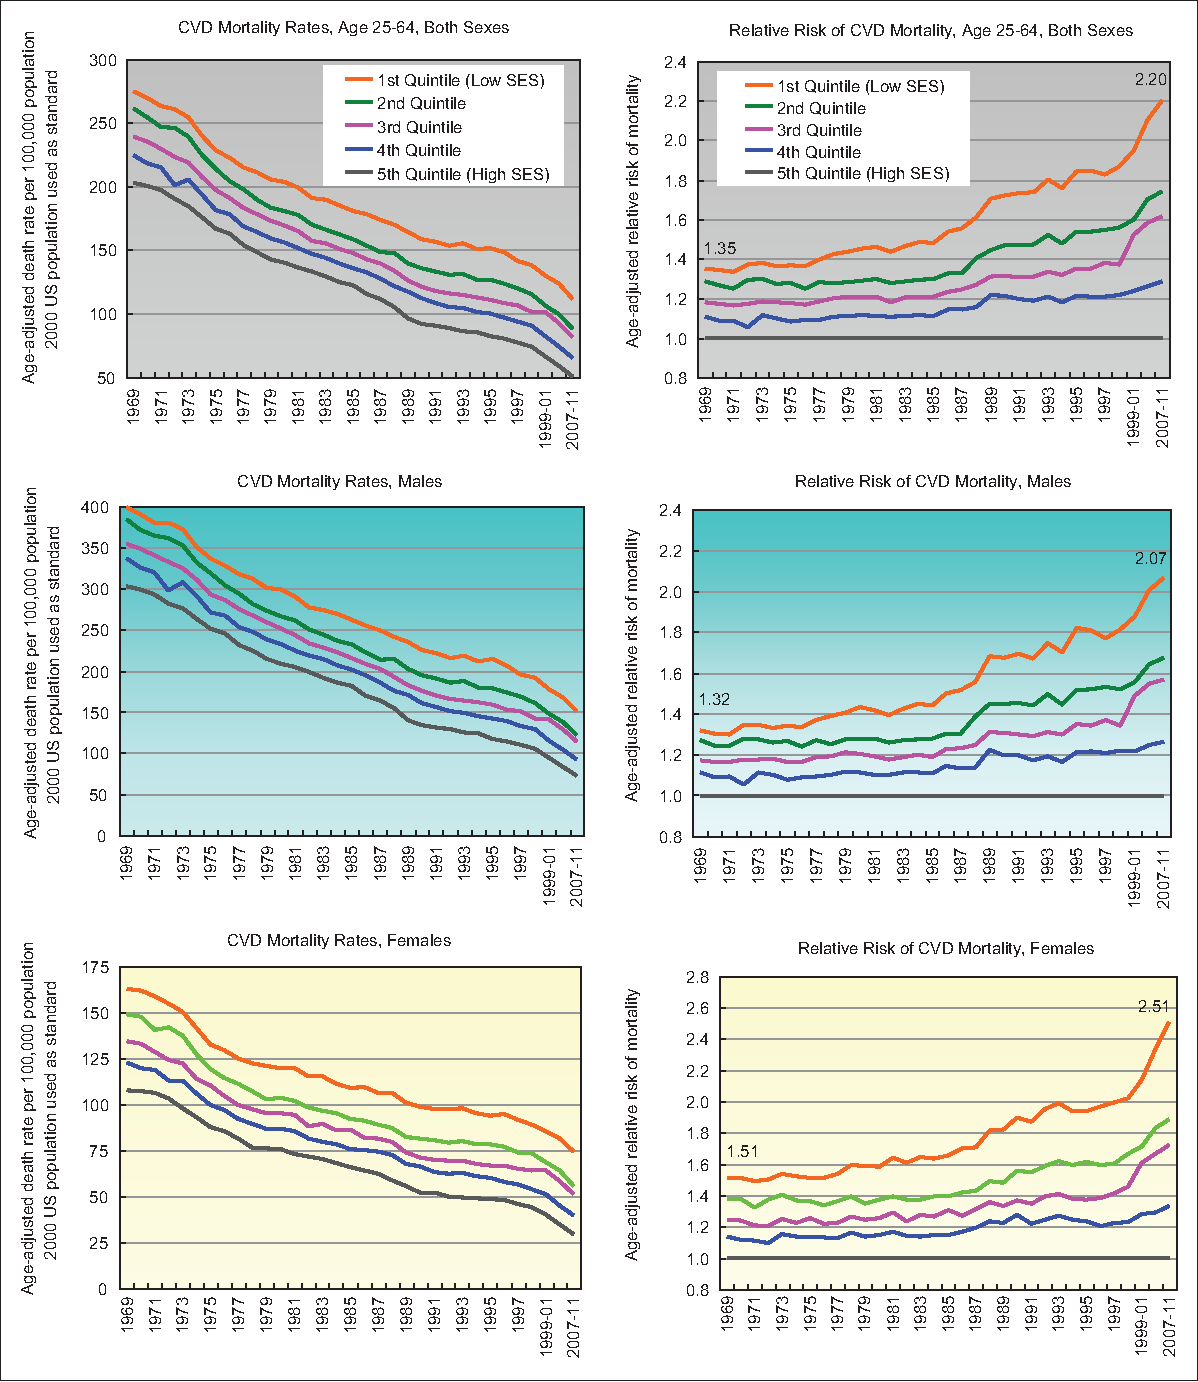 Figure 1. Cardiovascular Disease (CVD) Mortality Among US Population Aged 25-64 Years by Area Socioeconomic Deprivation Index, 1969-2011